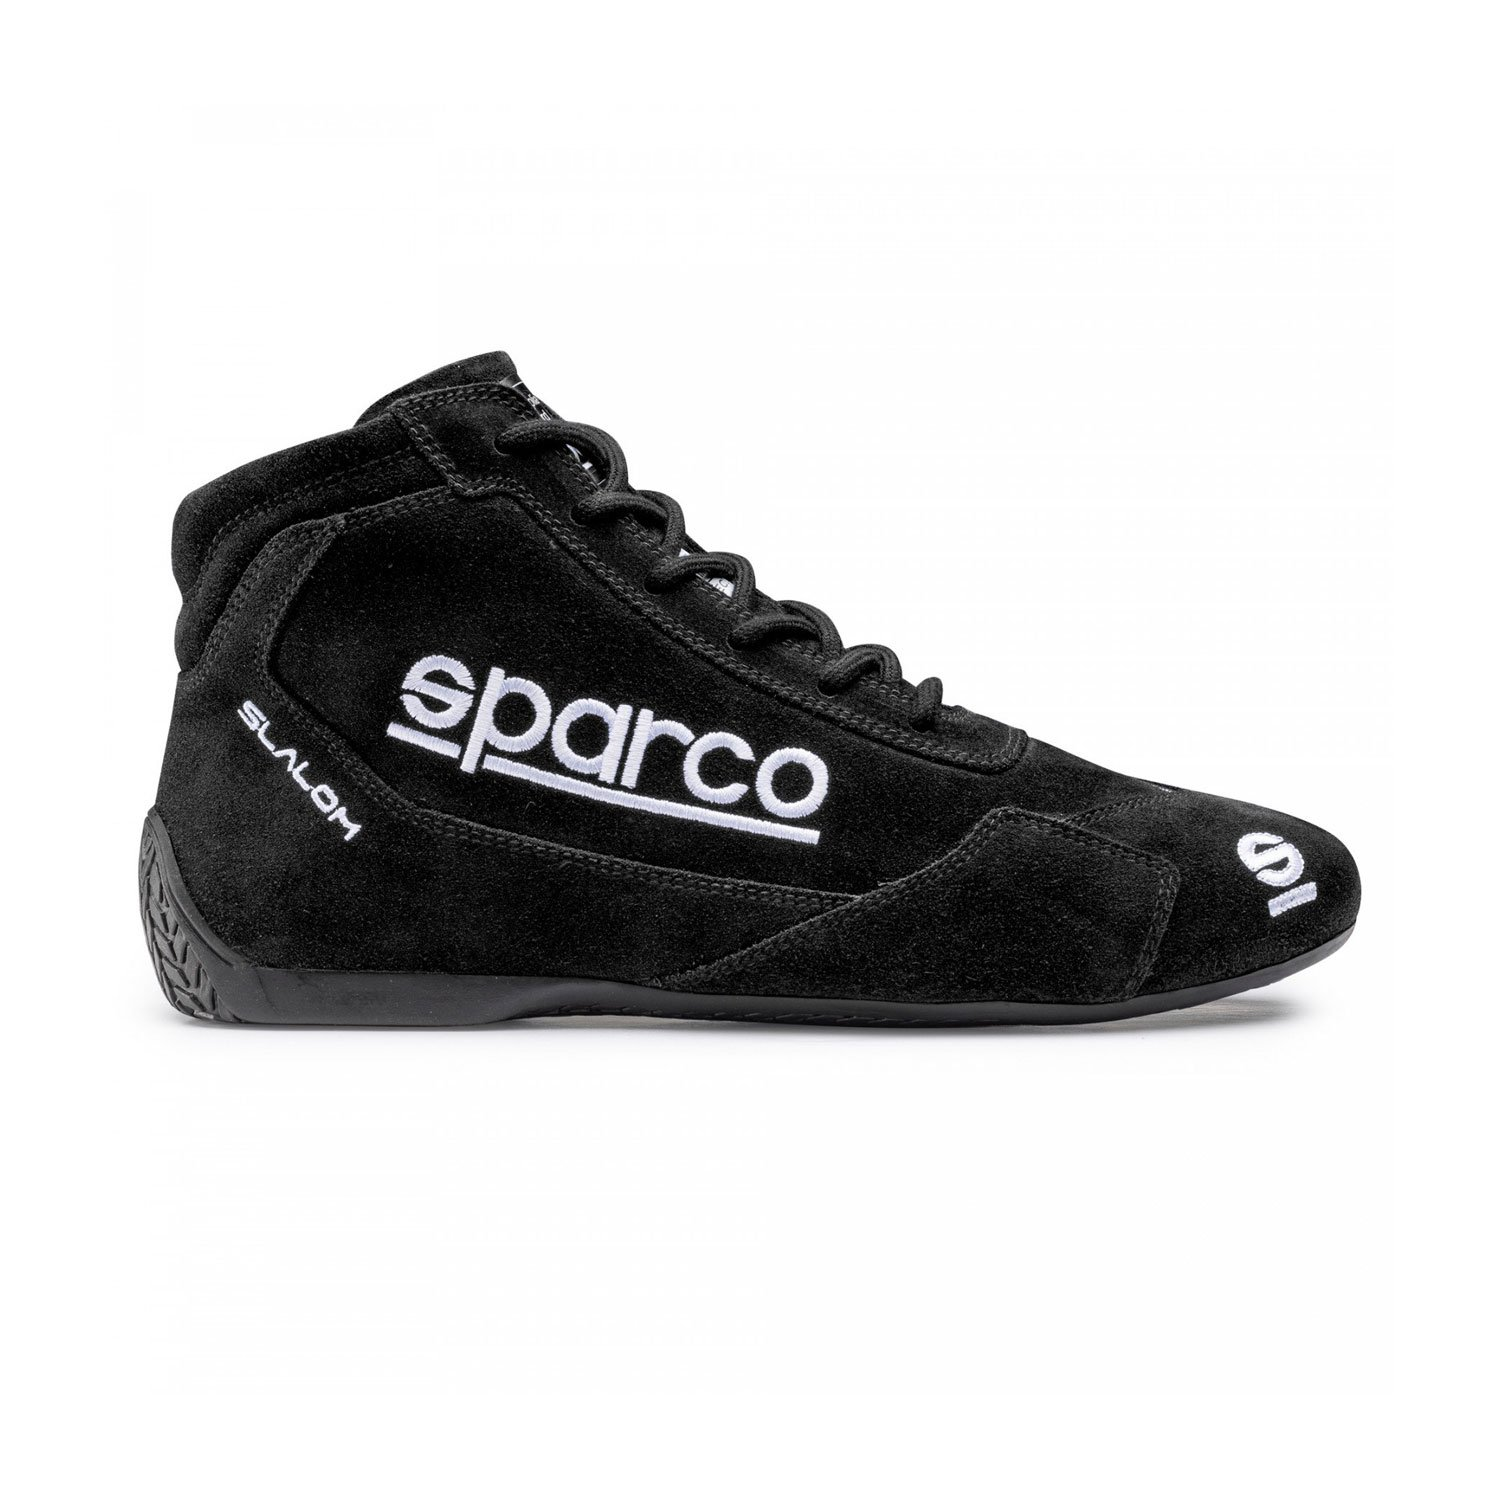 Sparco Italy SLALOM RB-3.1 Racing Shoes